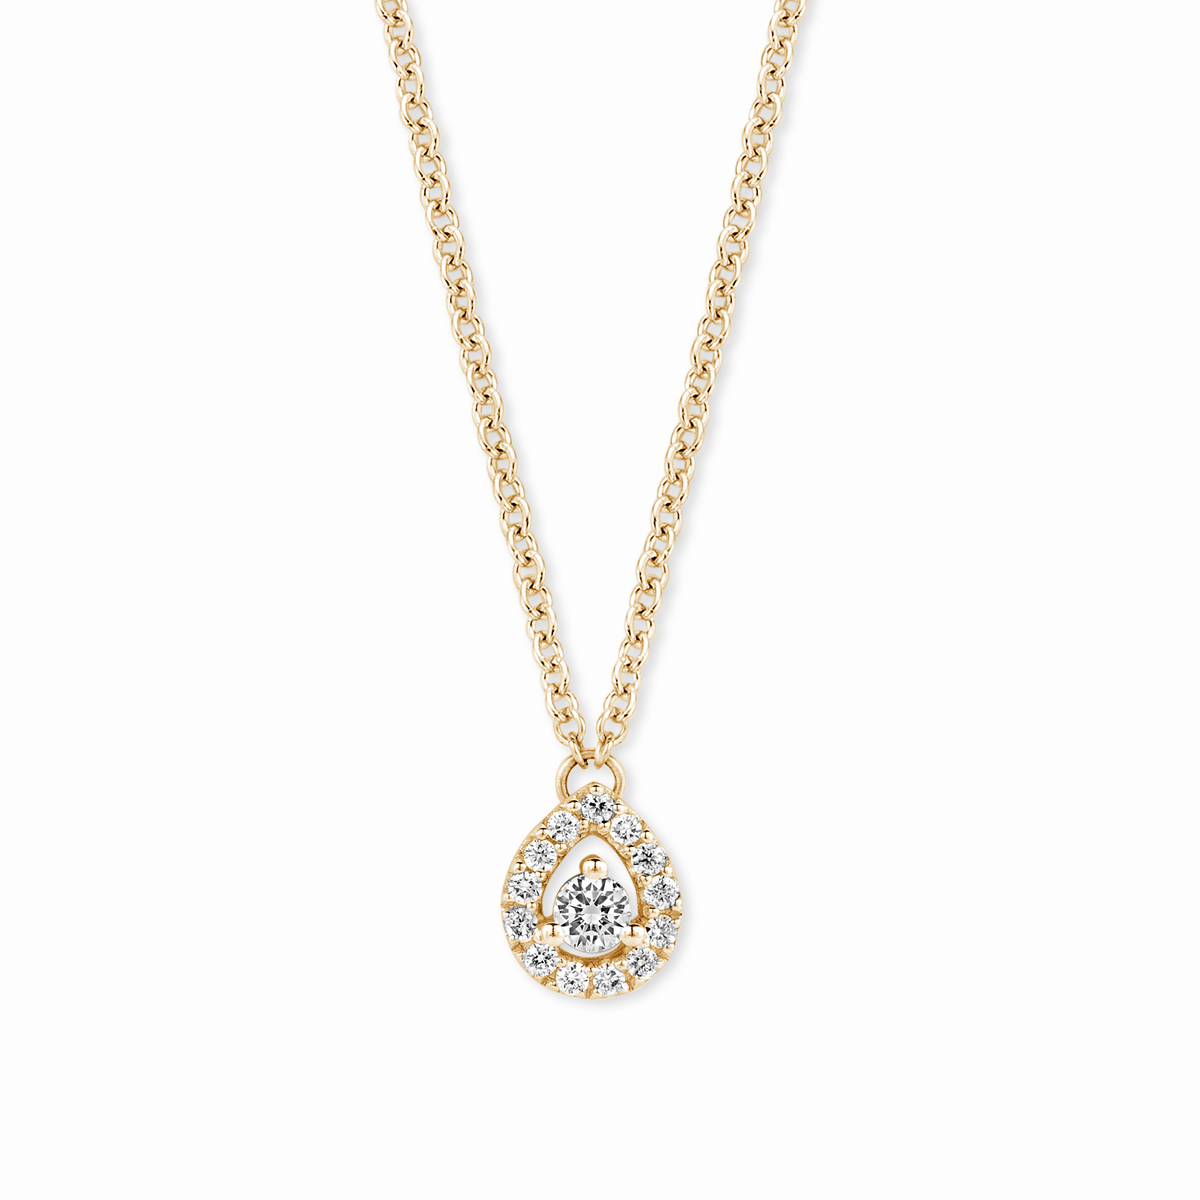 salina necklace in yellow gold